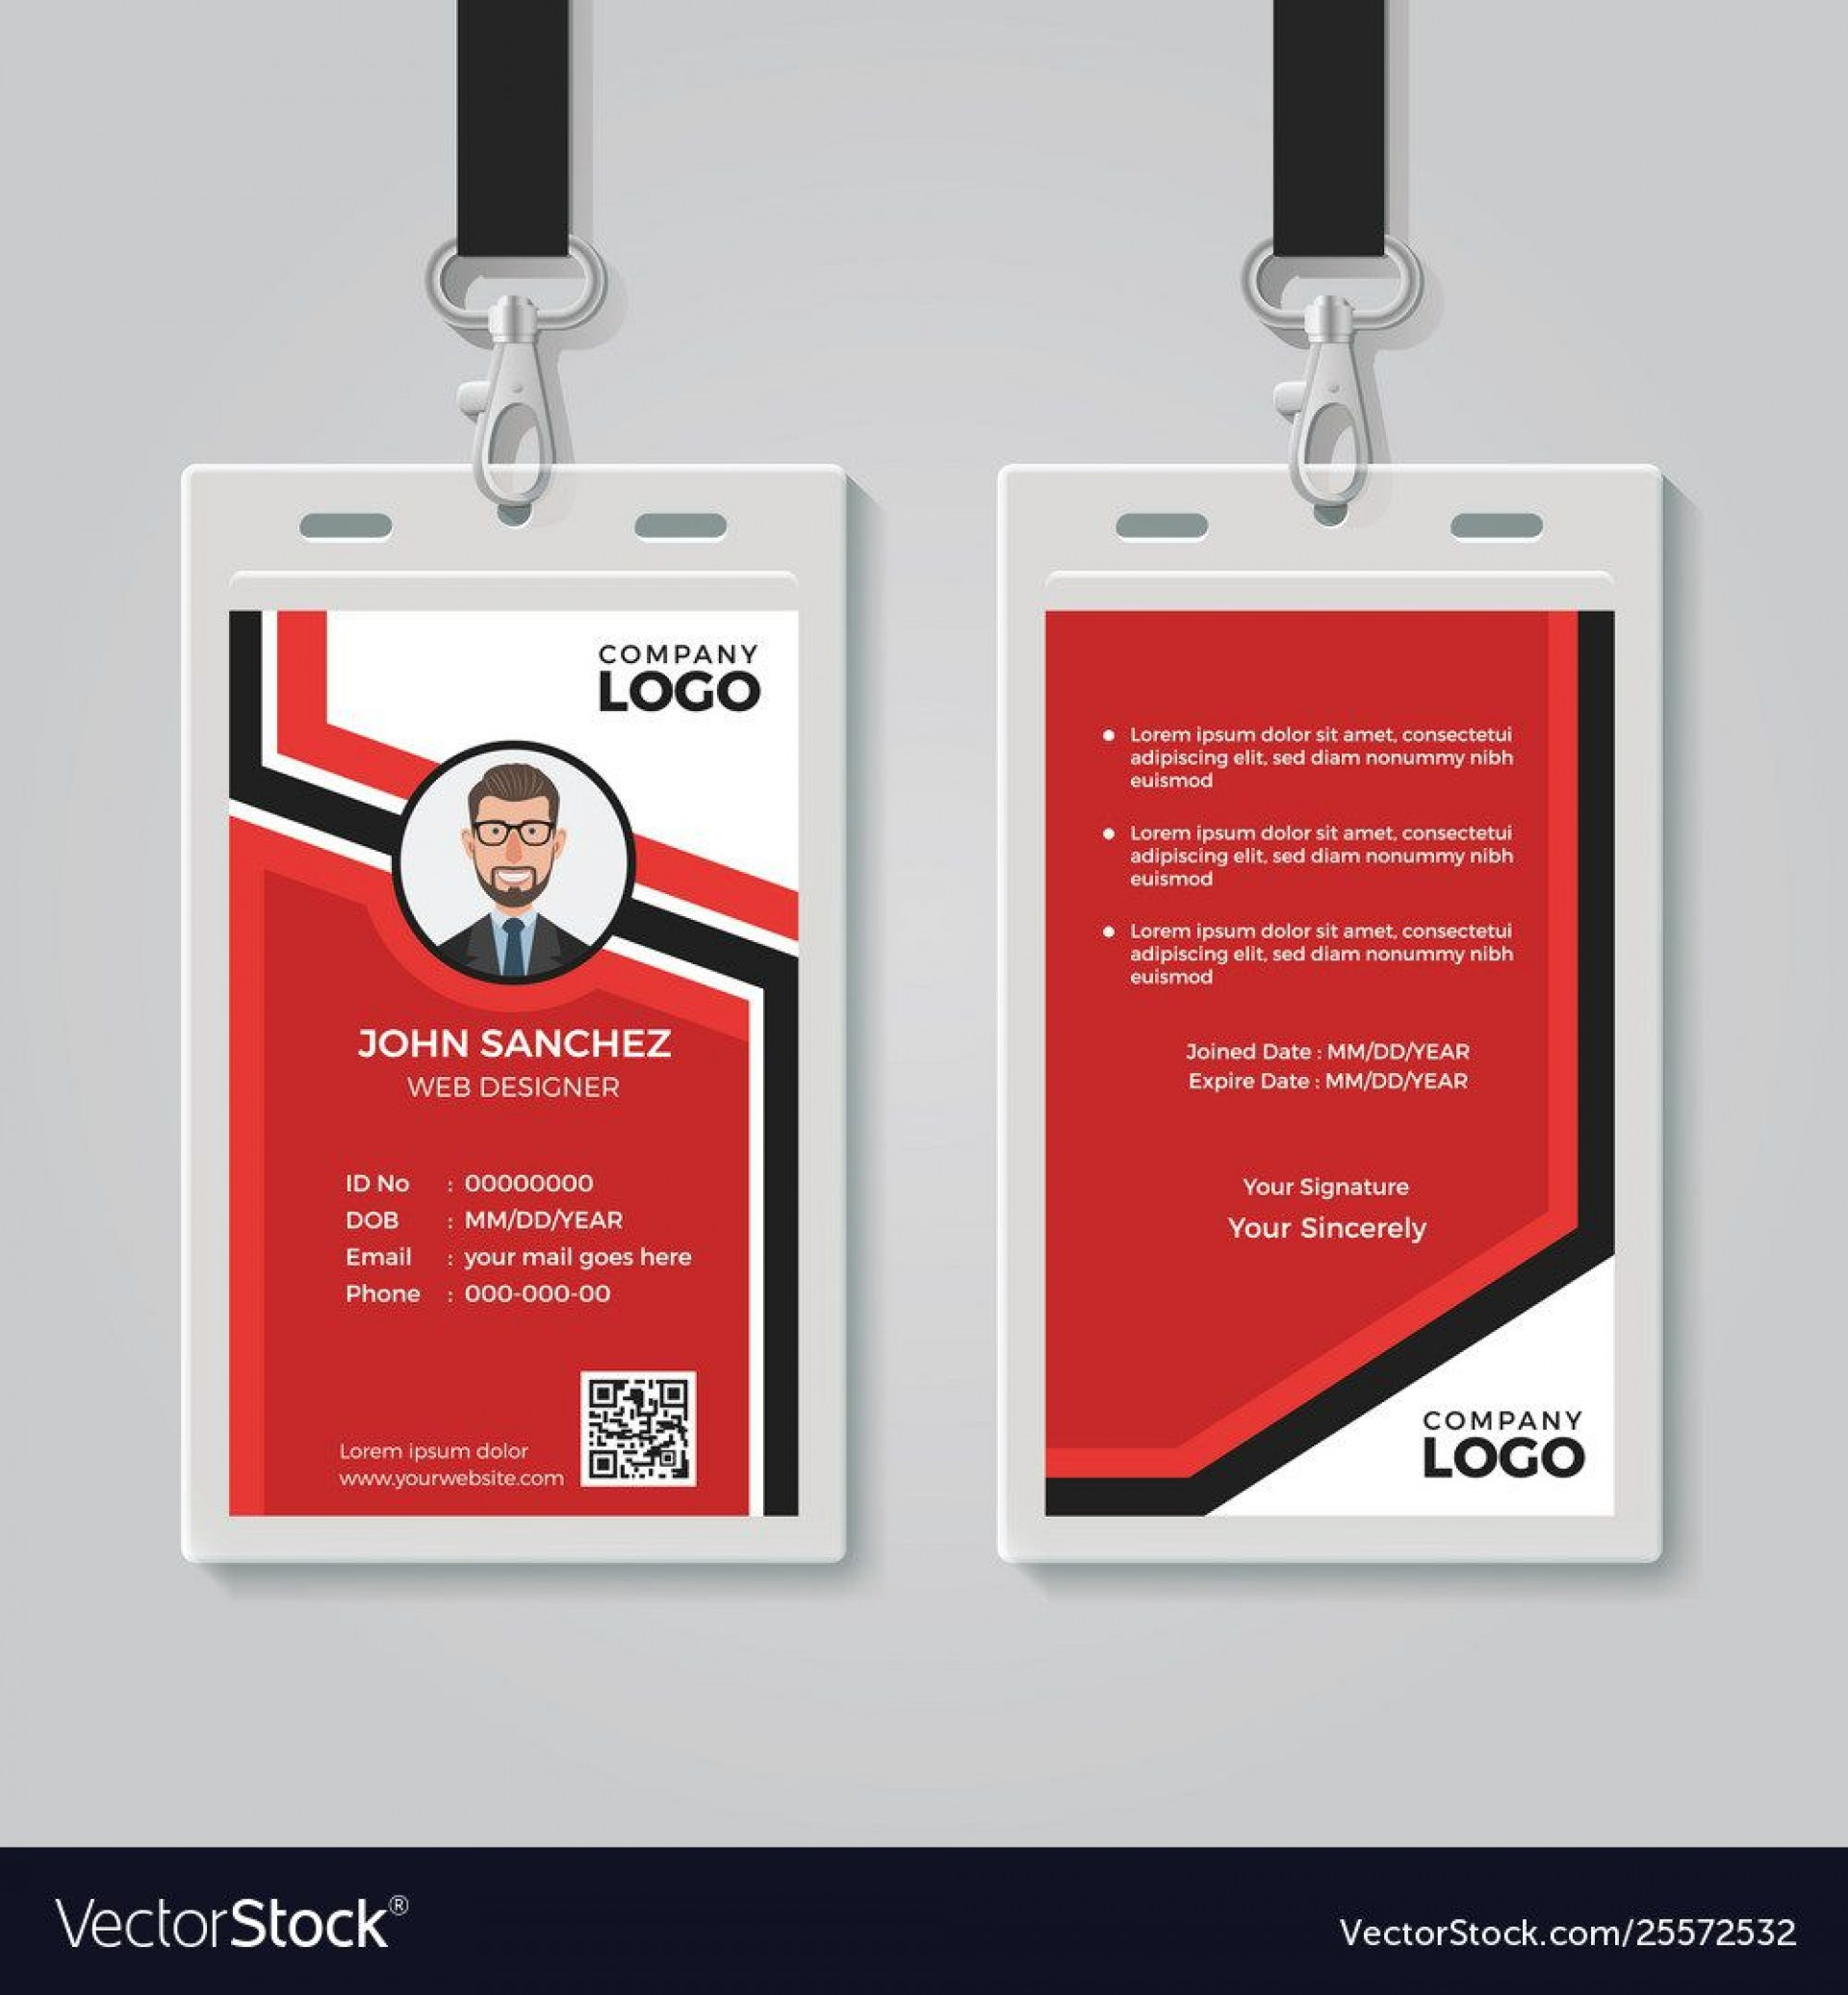 009 Staggering Id Card Template Free Download Highest Clarity  Design Photoshop Identity Student Word1920